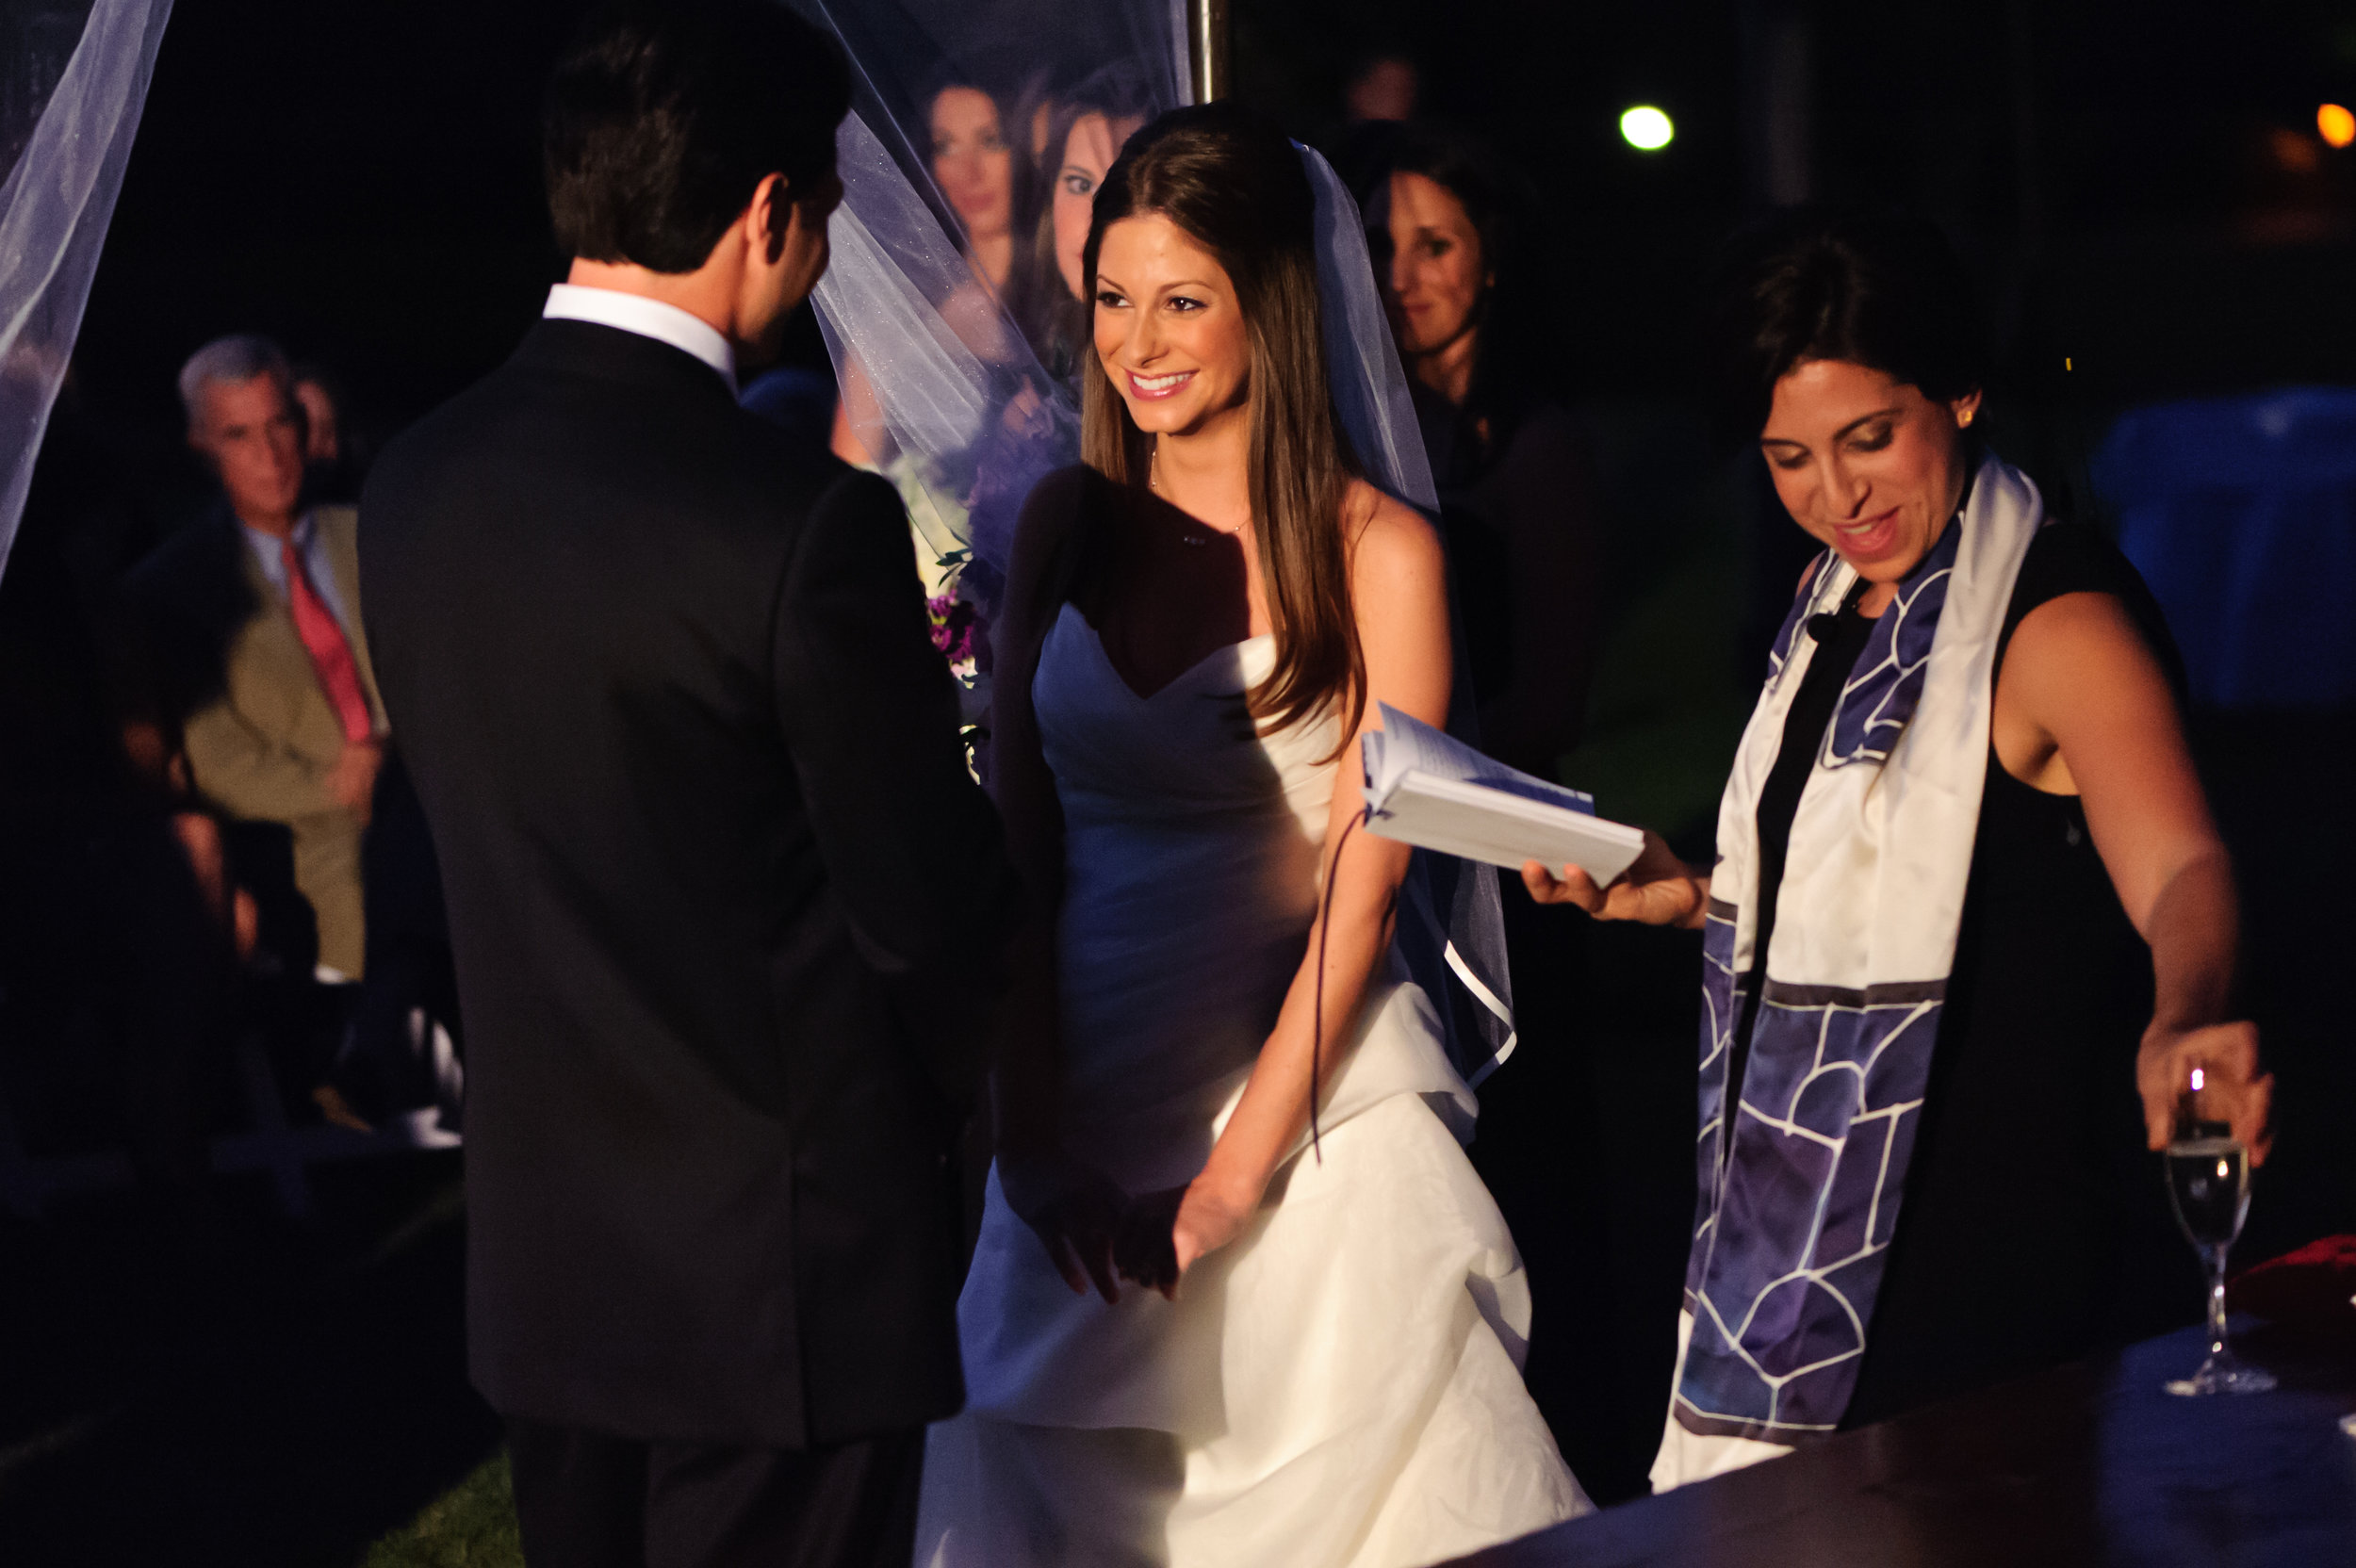 21  bride and groom at the alter evening wedding ceremony bride and groom exchanging vows Sergio Photography Life Design Events.JPG